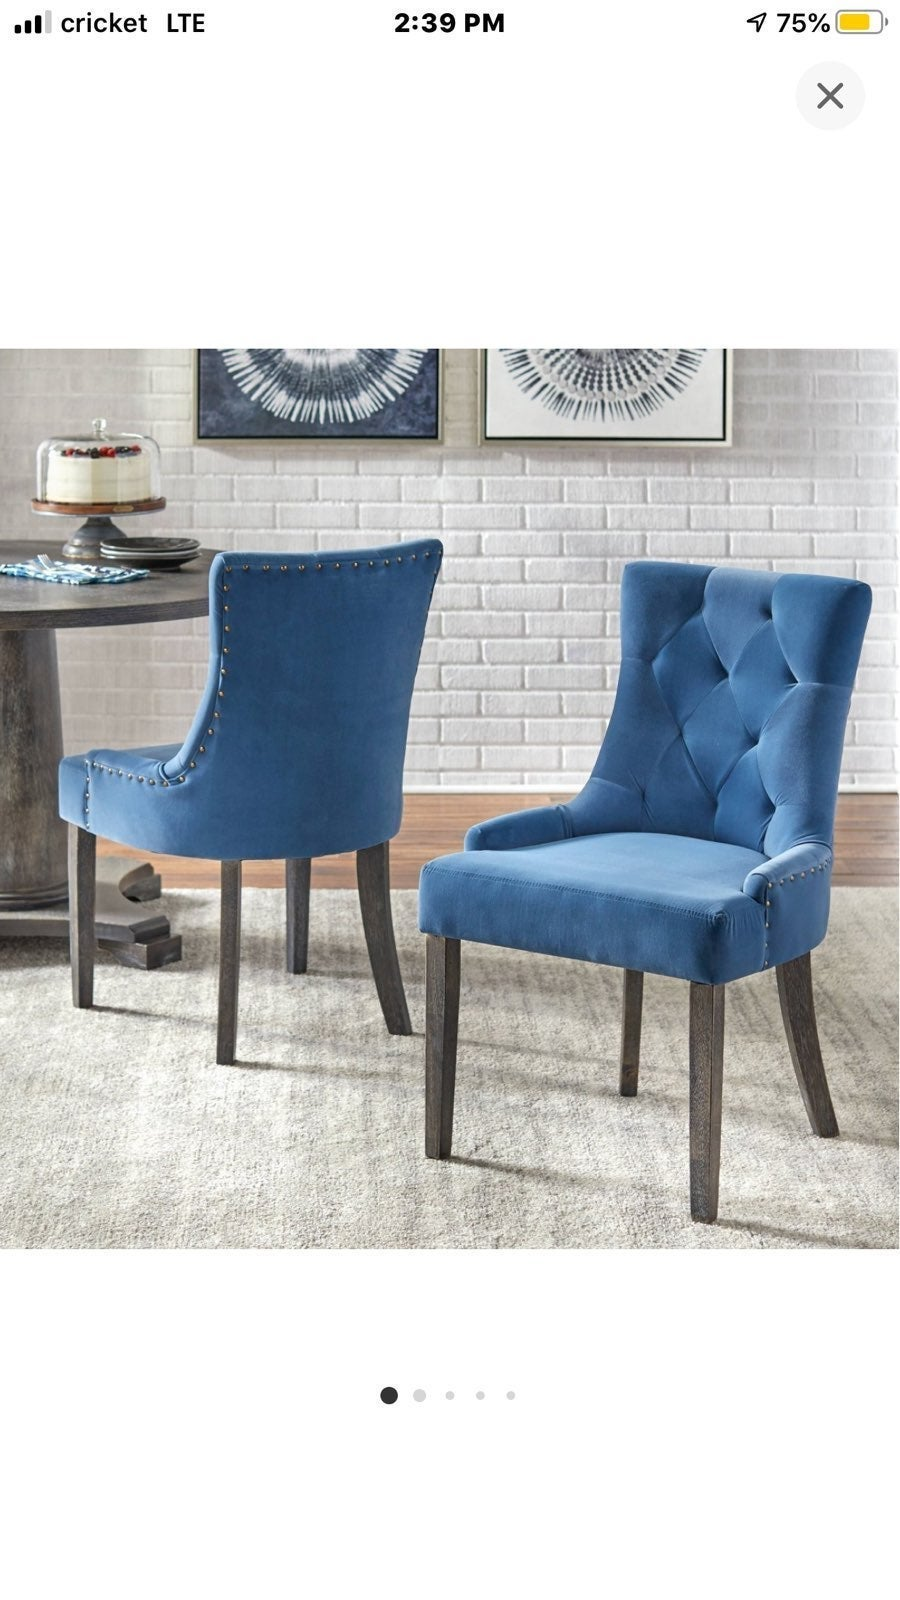 2 ariana parson dining chairs angelo:HOM